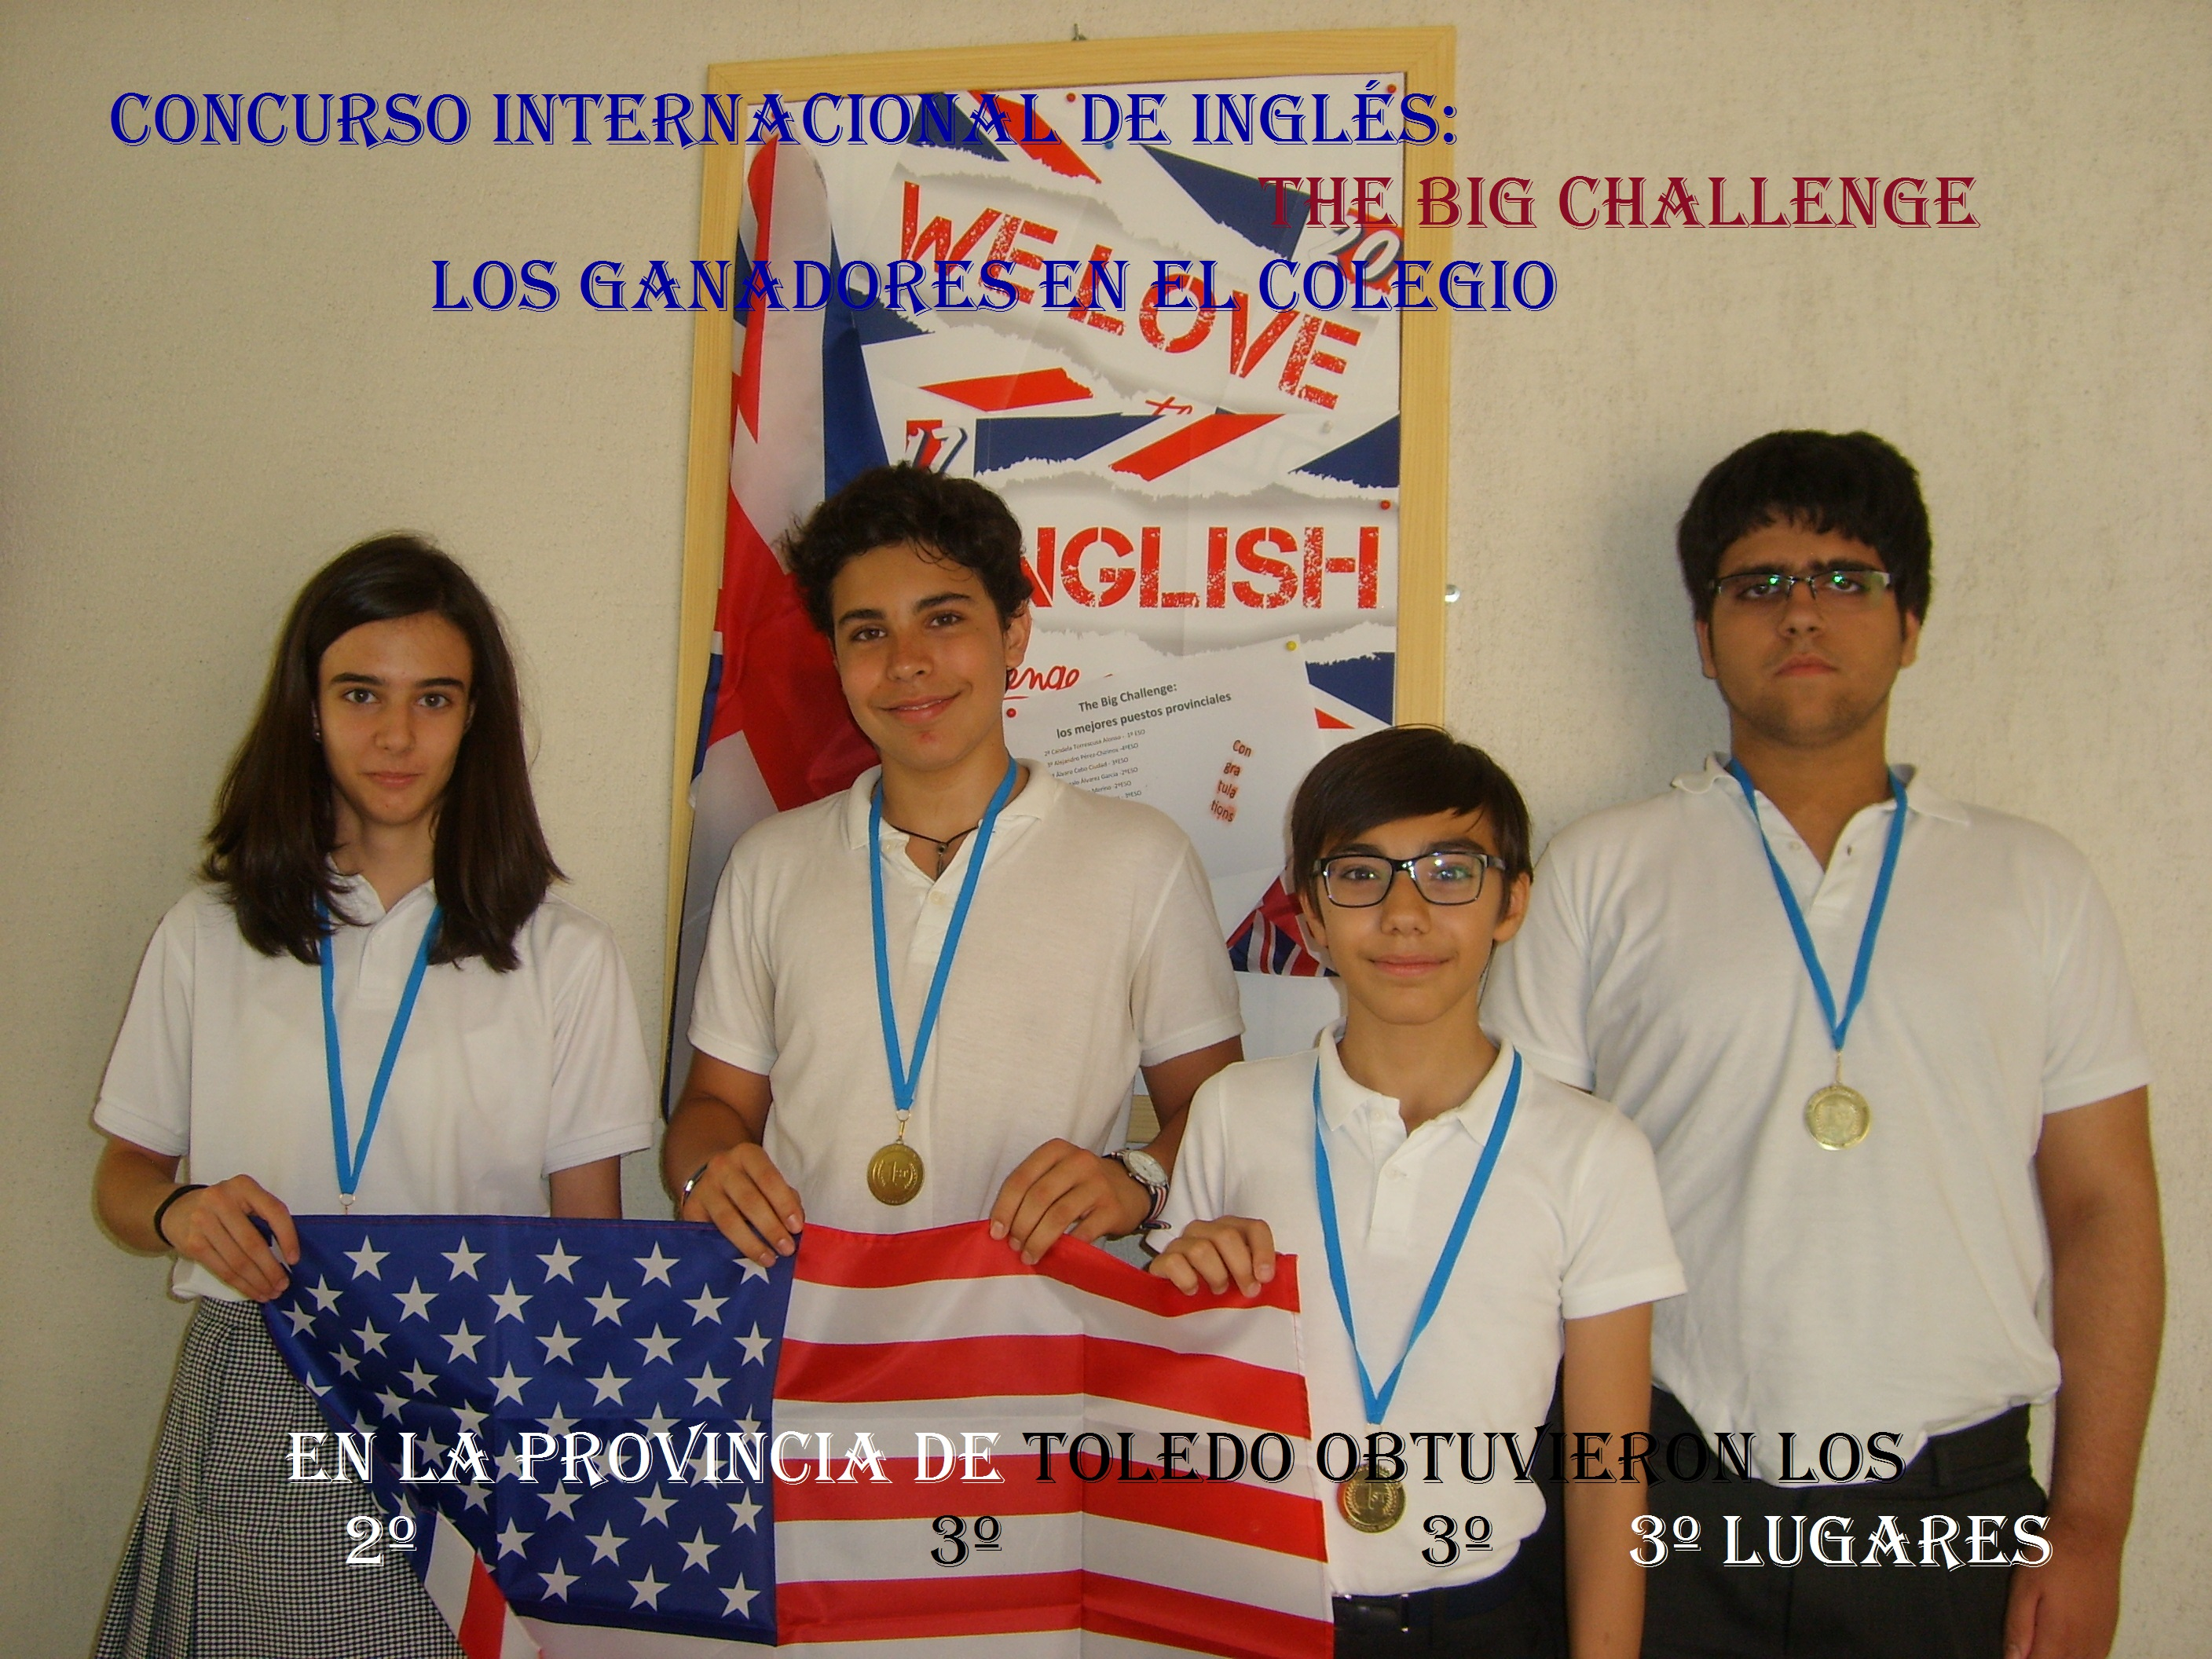 Concurso Internacional The Big Challenge